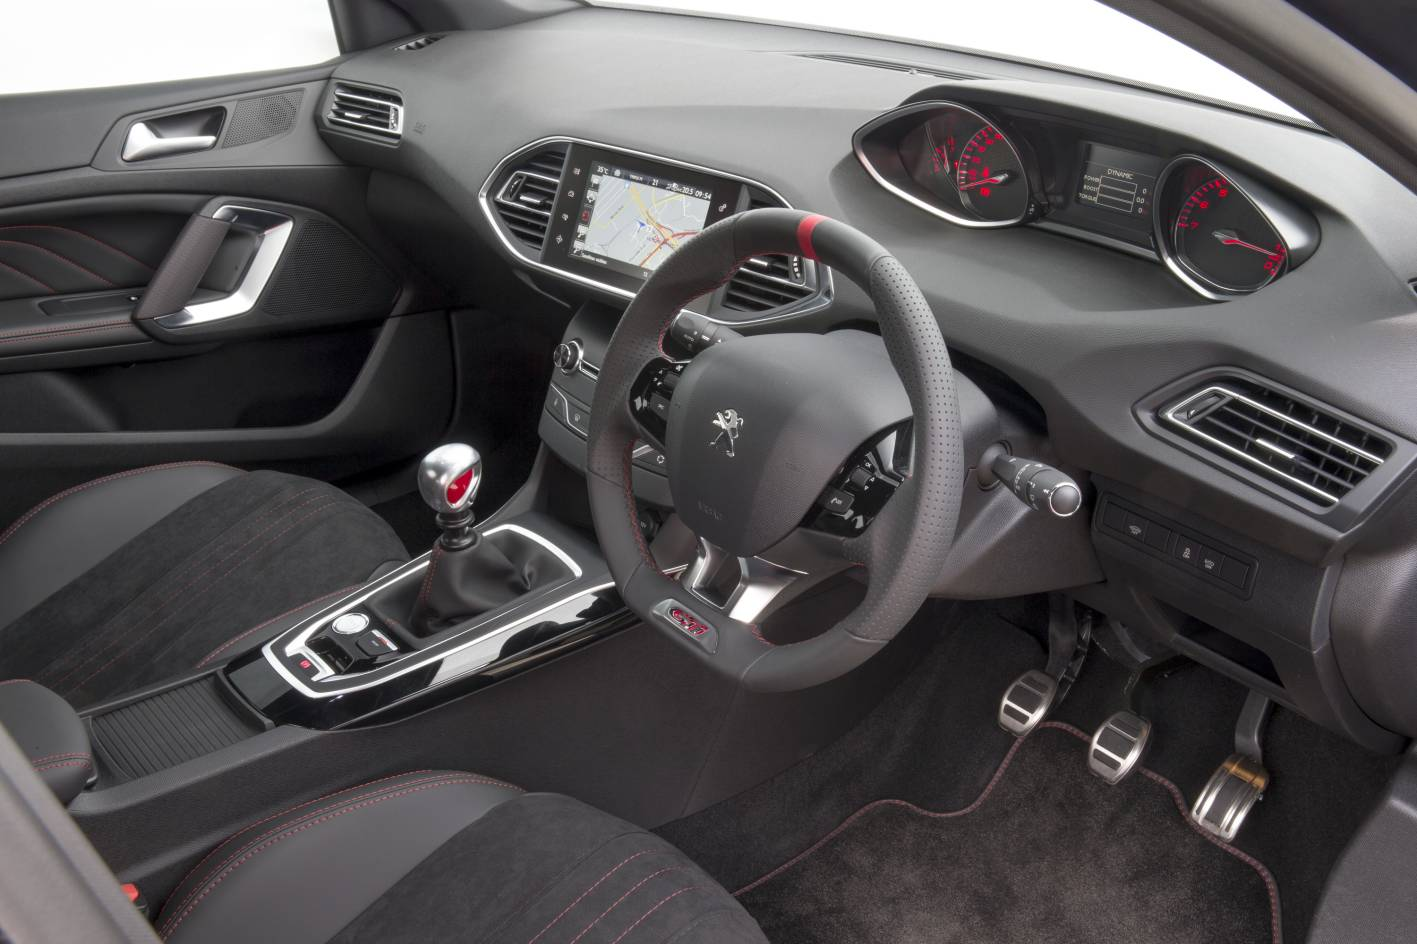 7 Seater Suv 2017 >> Peugeot 308 GTi launched from sub-$45k - ForceGT.com